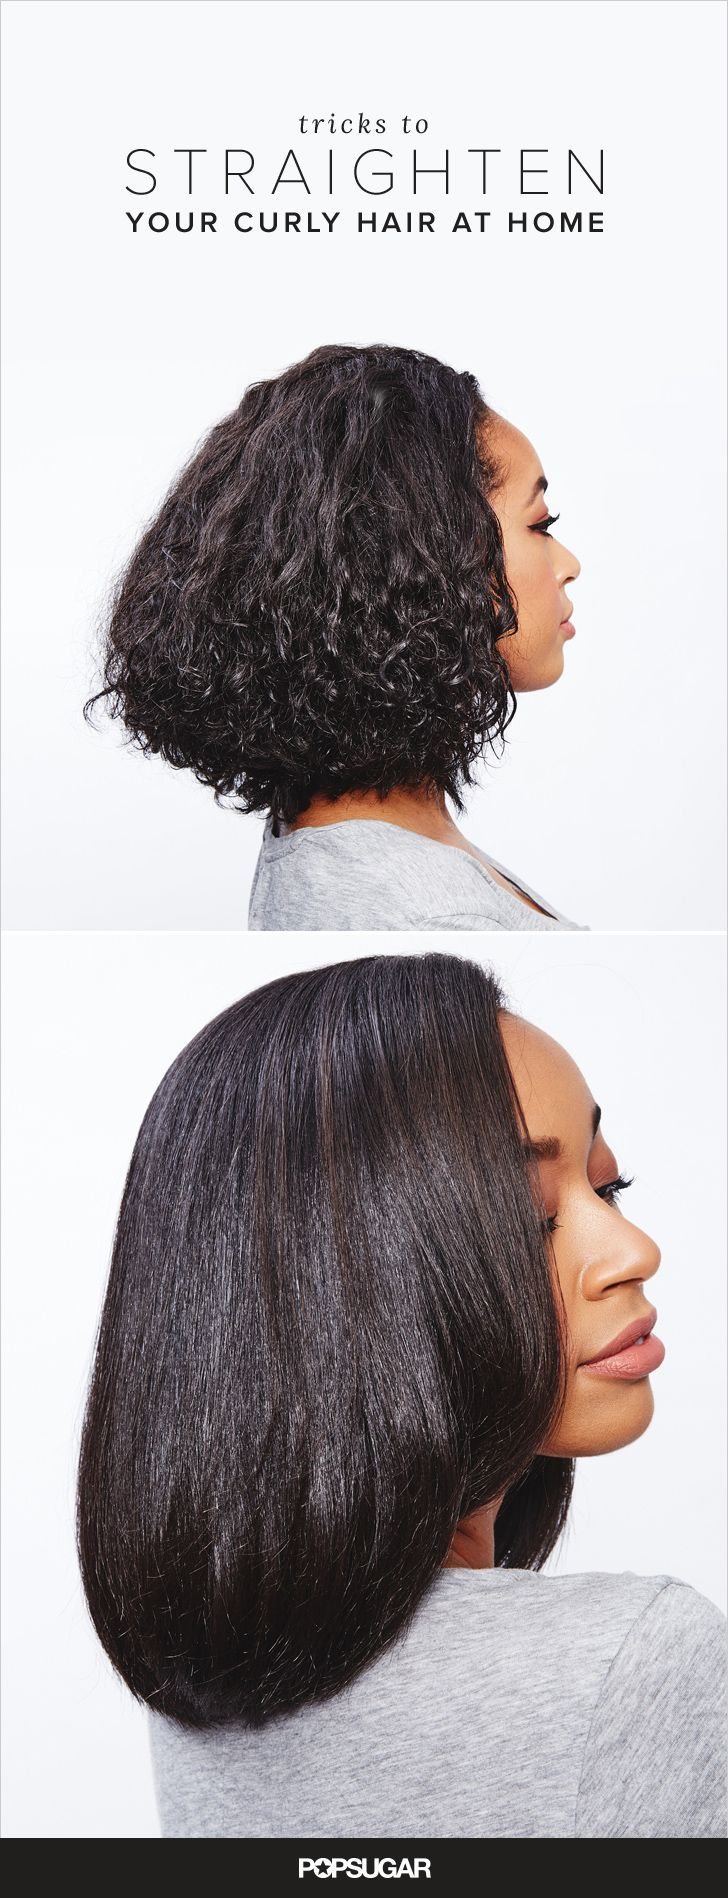 Getting coarse, thick, or curly hair straight requires more than a round brush and blow dryer. Before you trust a blowout bar with your delicate strands, we challenge you to try straightening at home. We've enlisted the help of Johnny Wright, celebrity hairstylist and artistic style director of Amla Legend, to break down the 10 major mistakes you're making when you flat-iron your curls — with easy fixes.